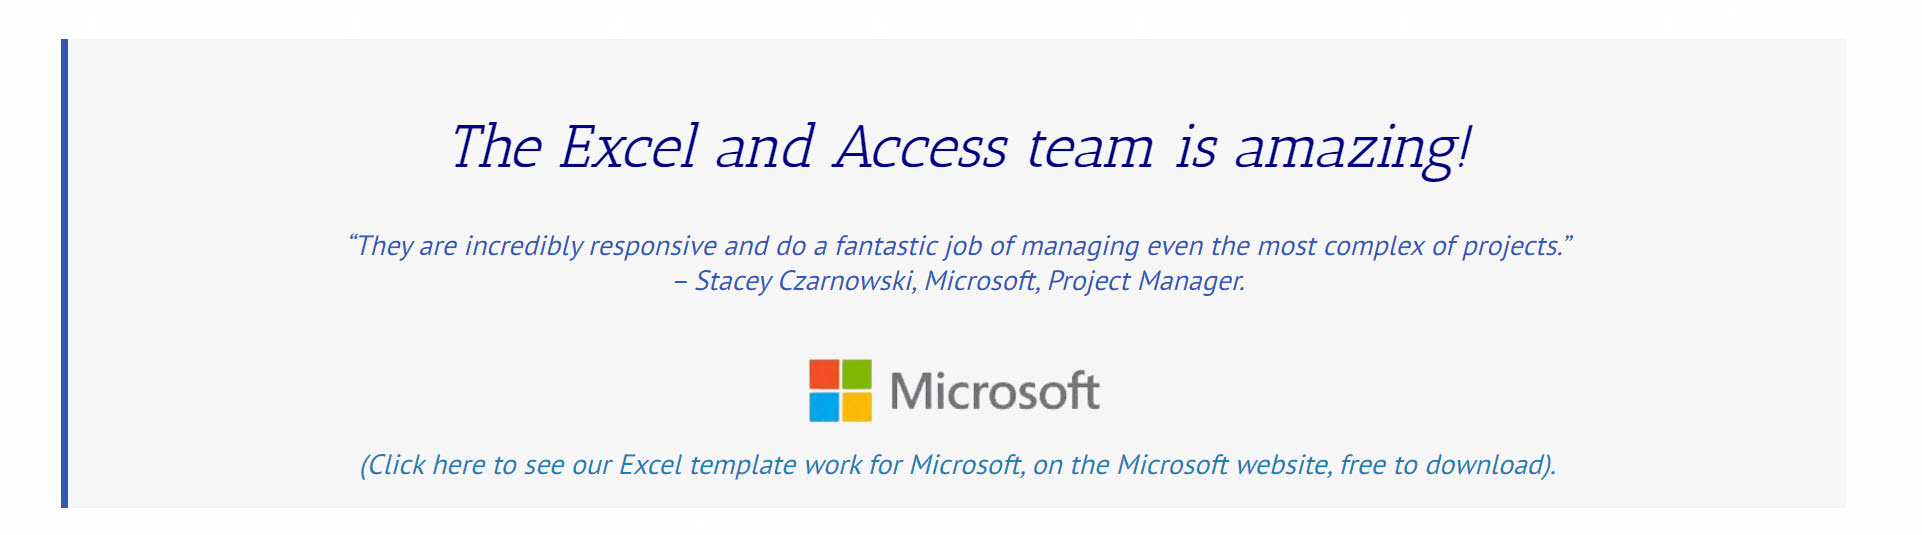 Image of testimonial Microsoft wrote on our work for them